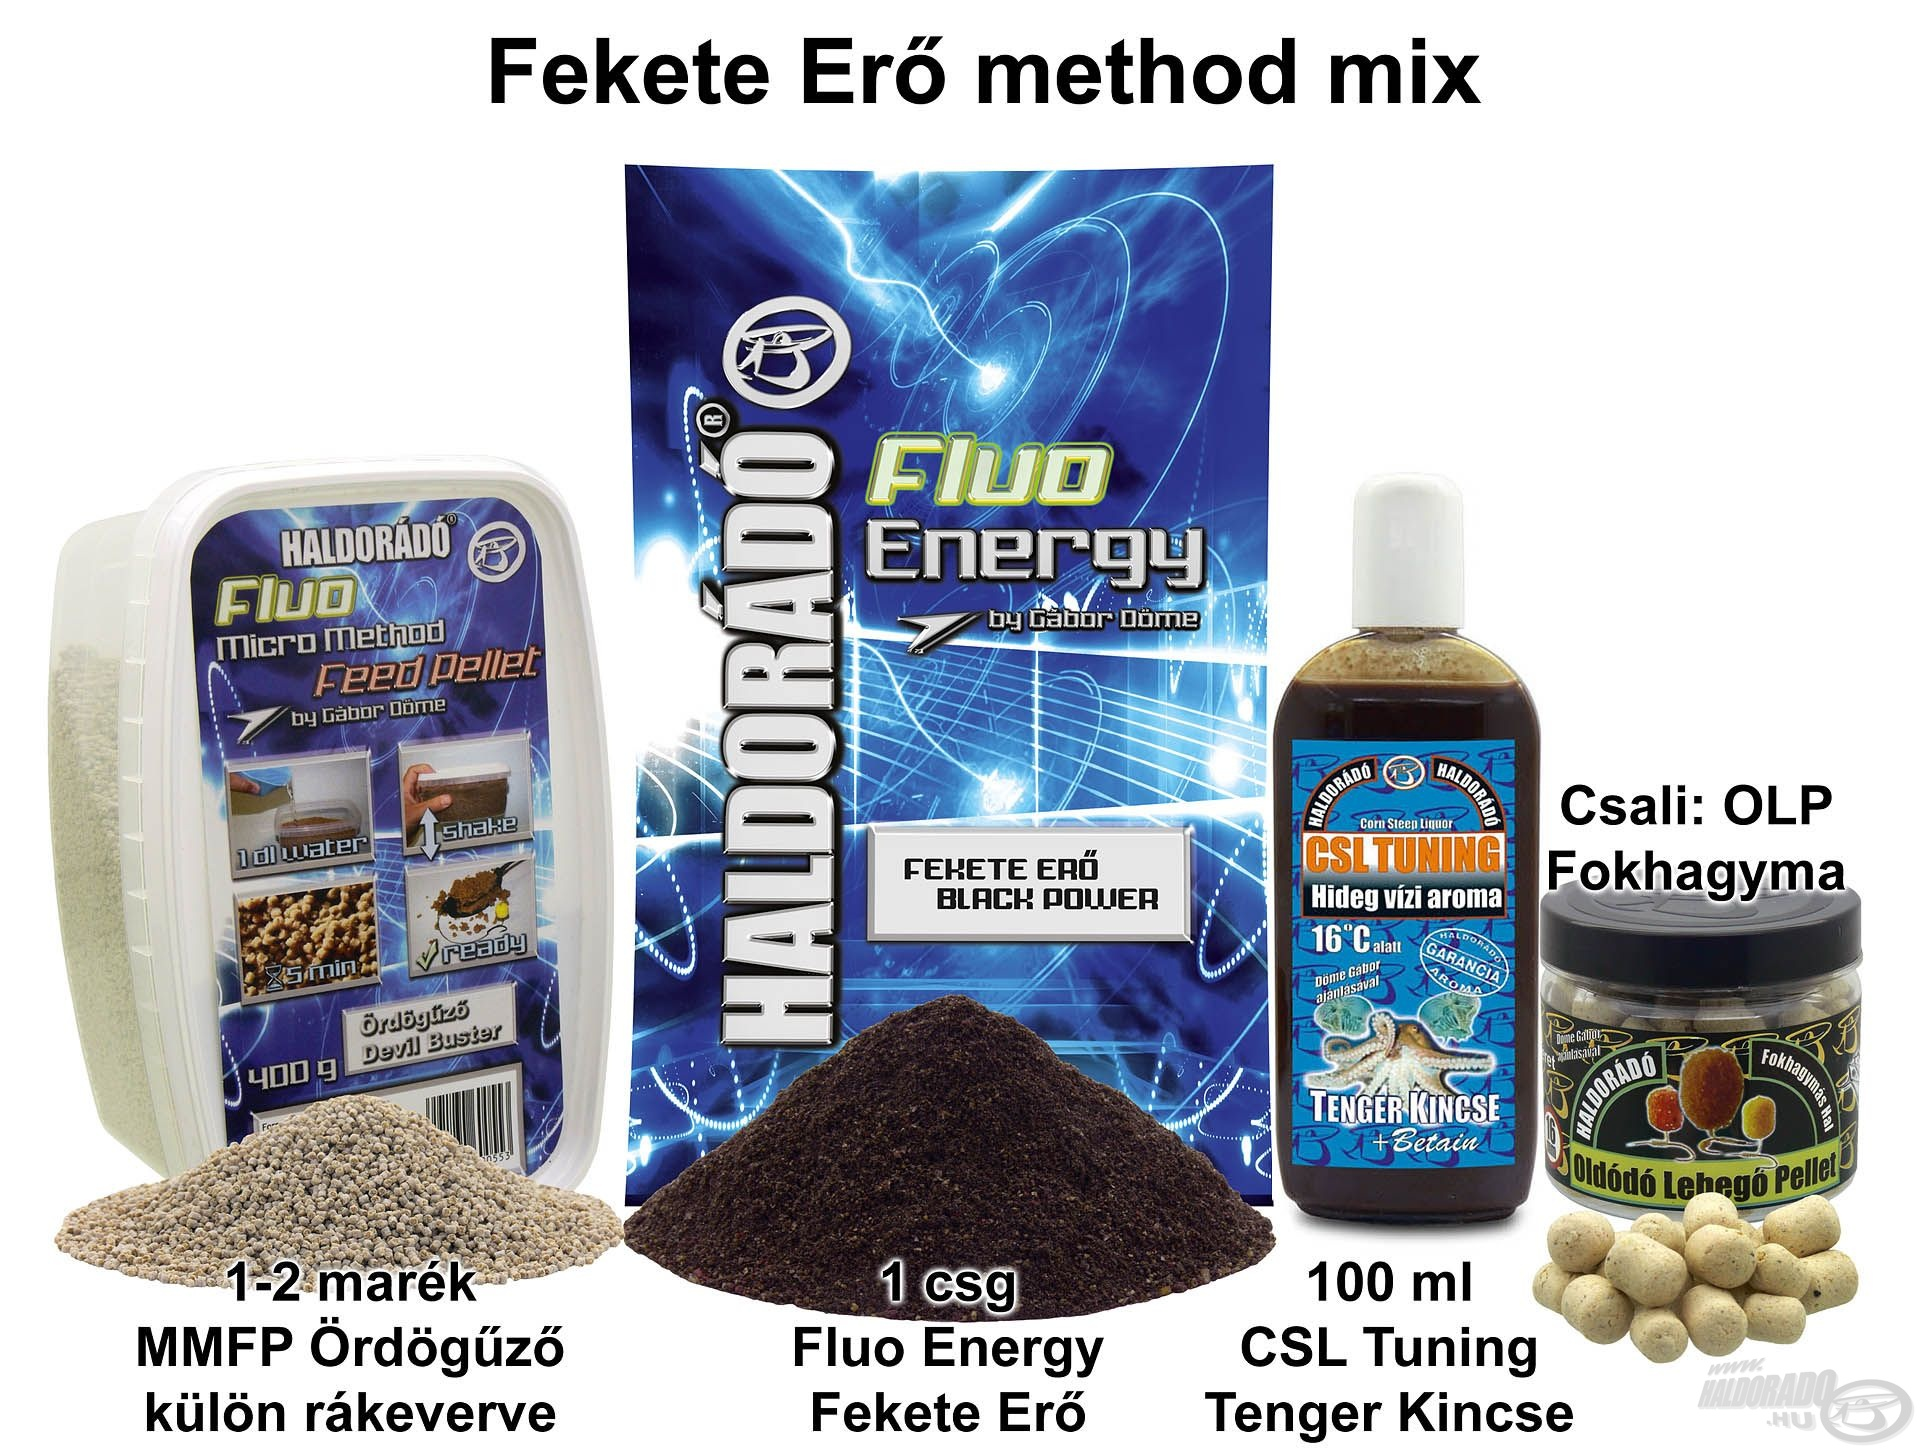 Fekete Erő method mix